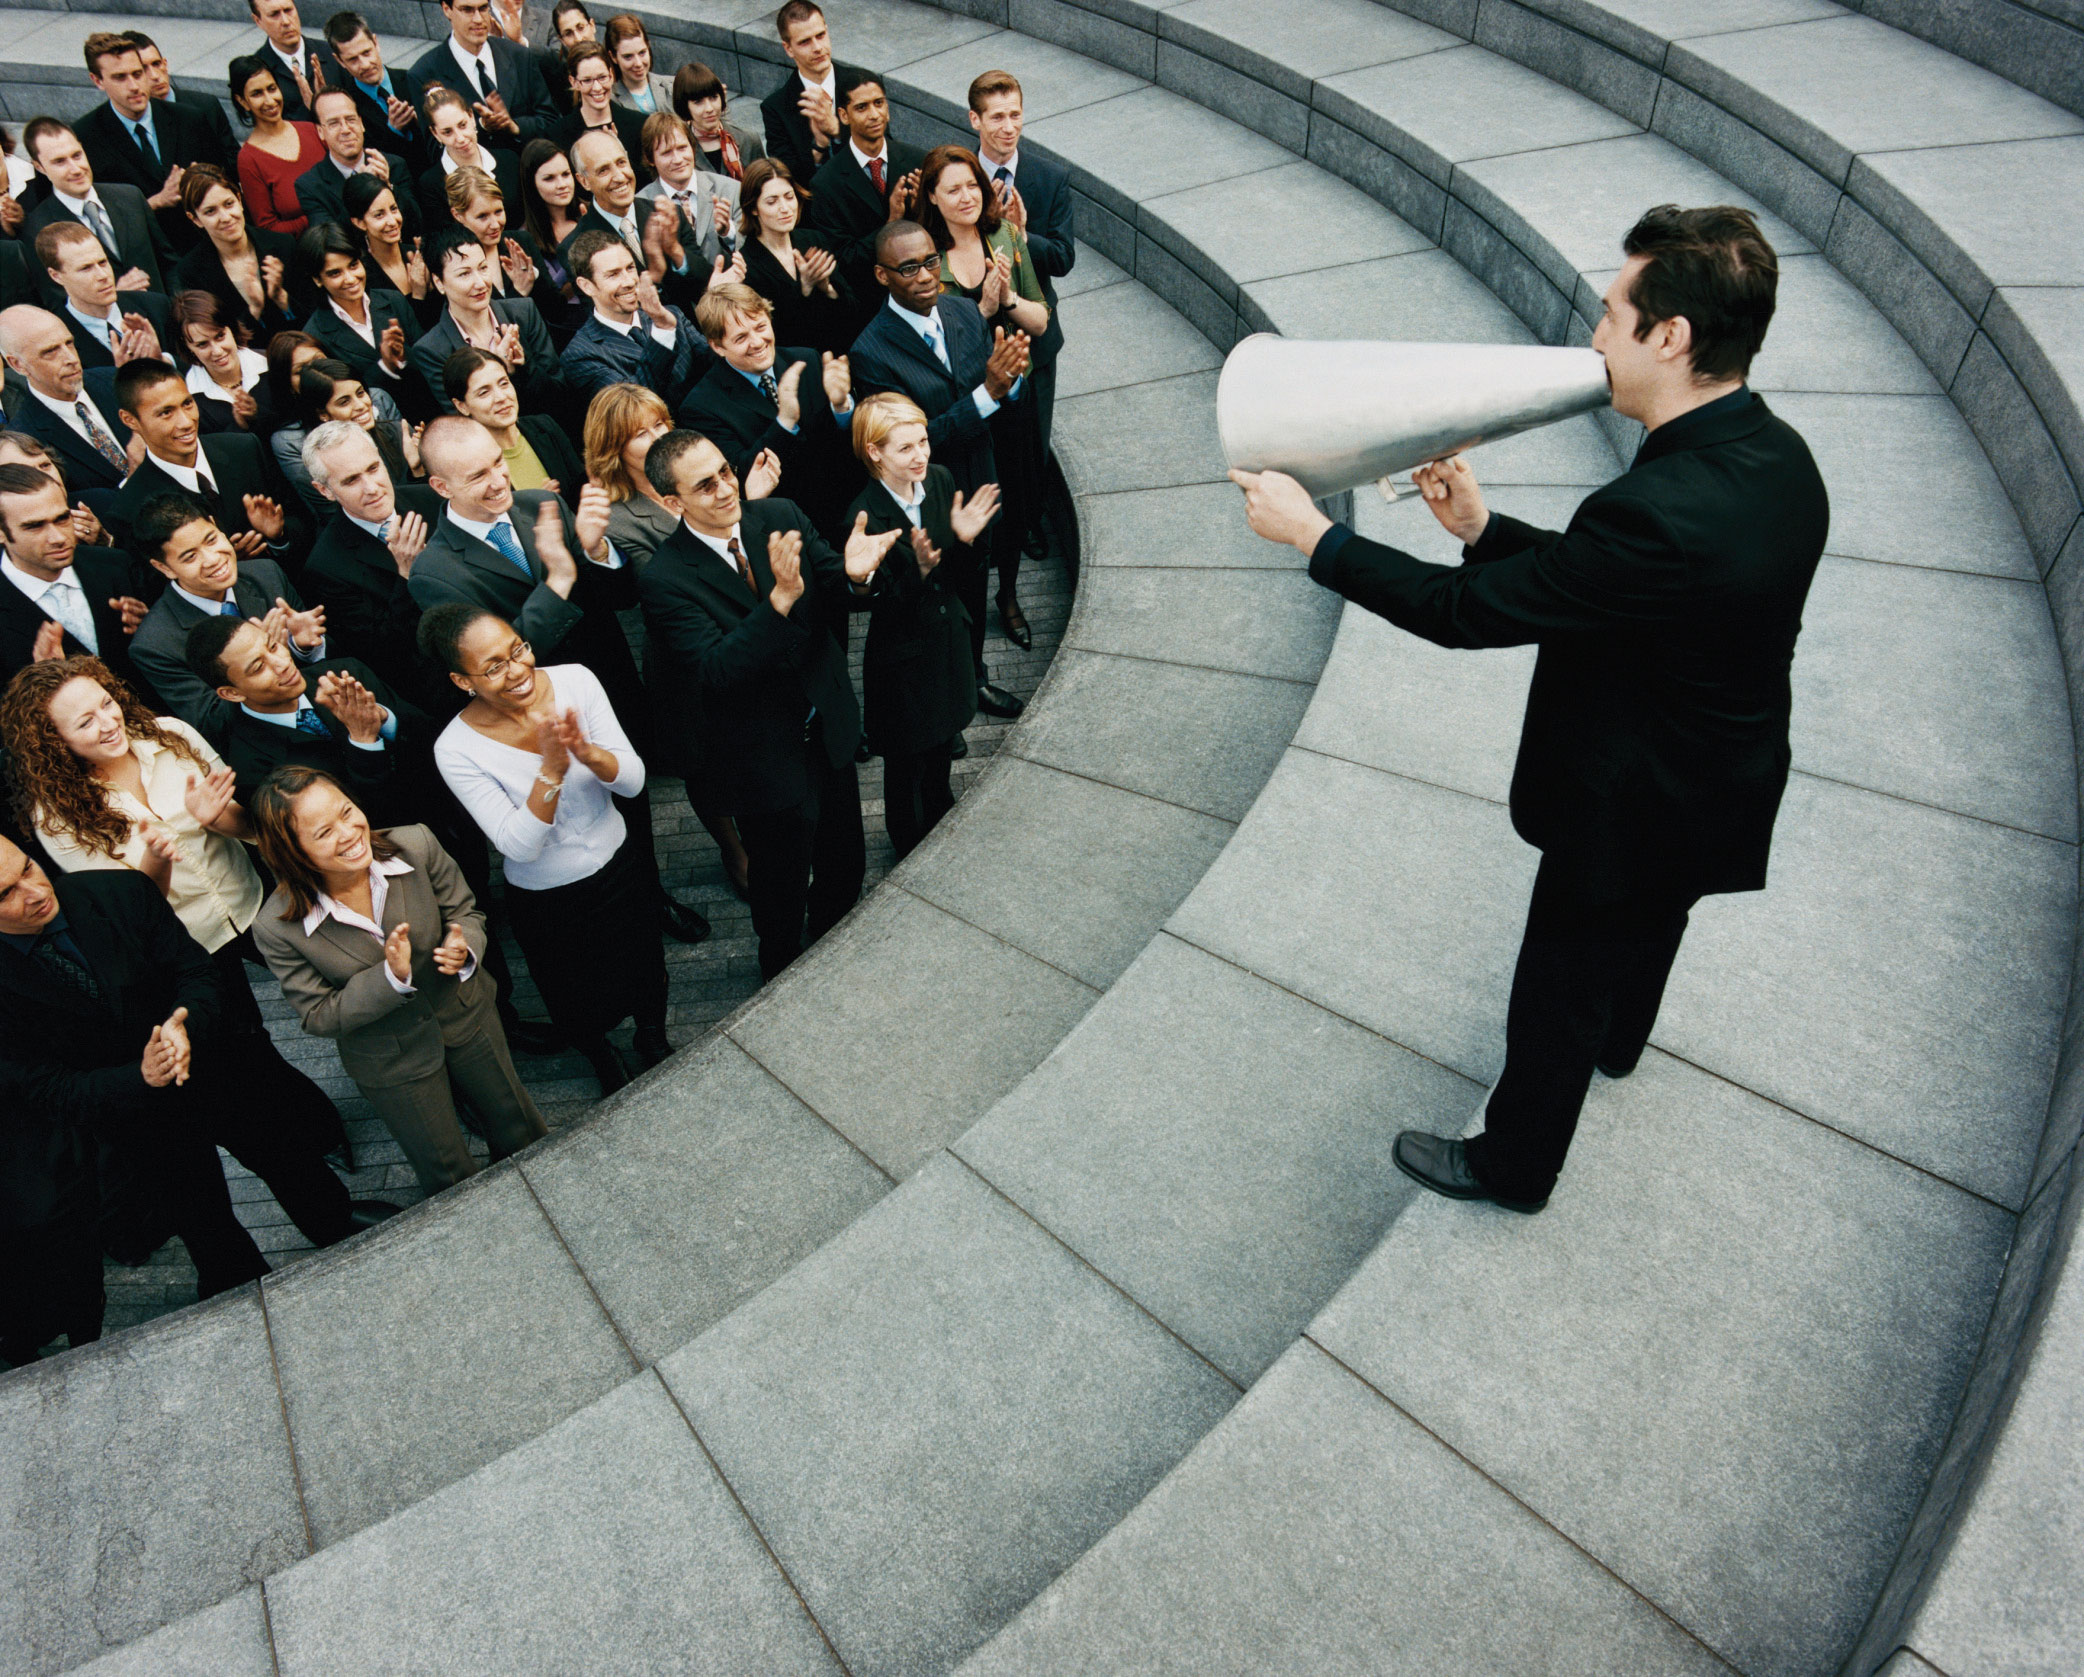 A crowd applauding a man using a cone to amplify his voice